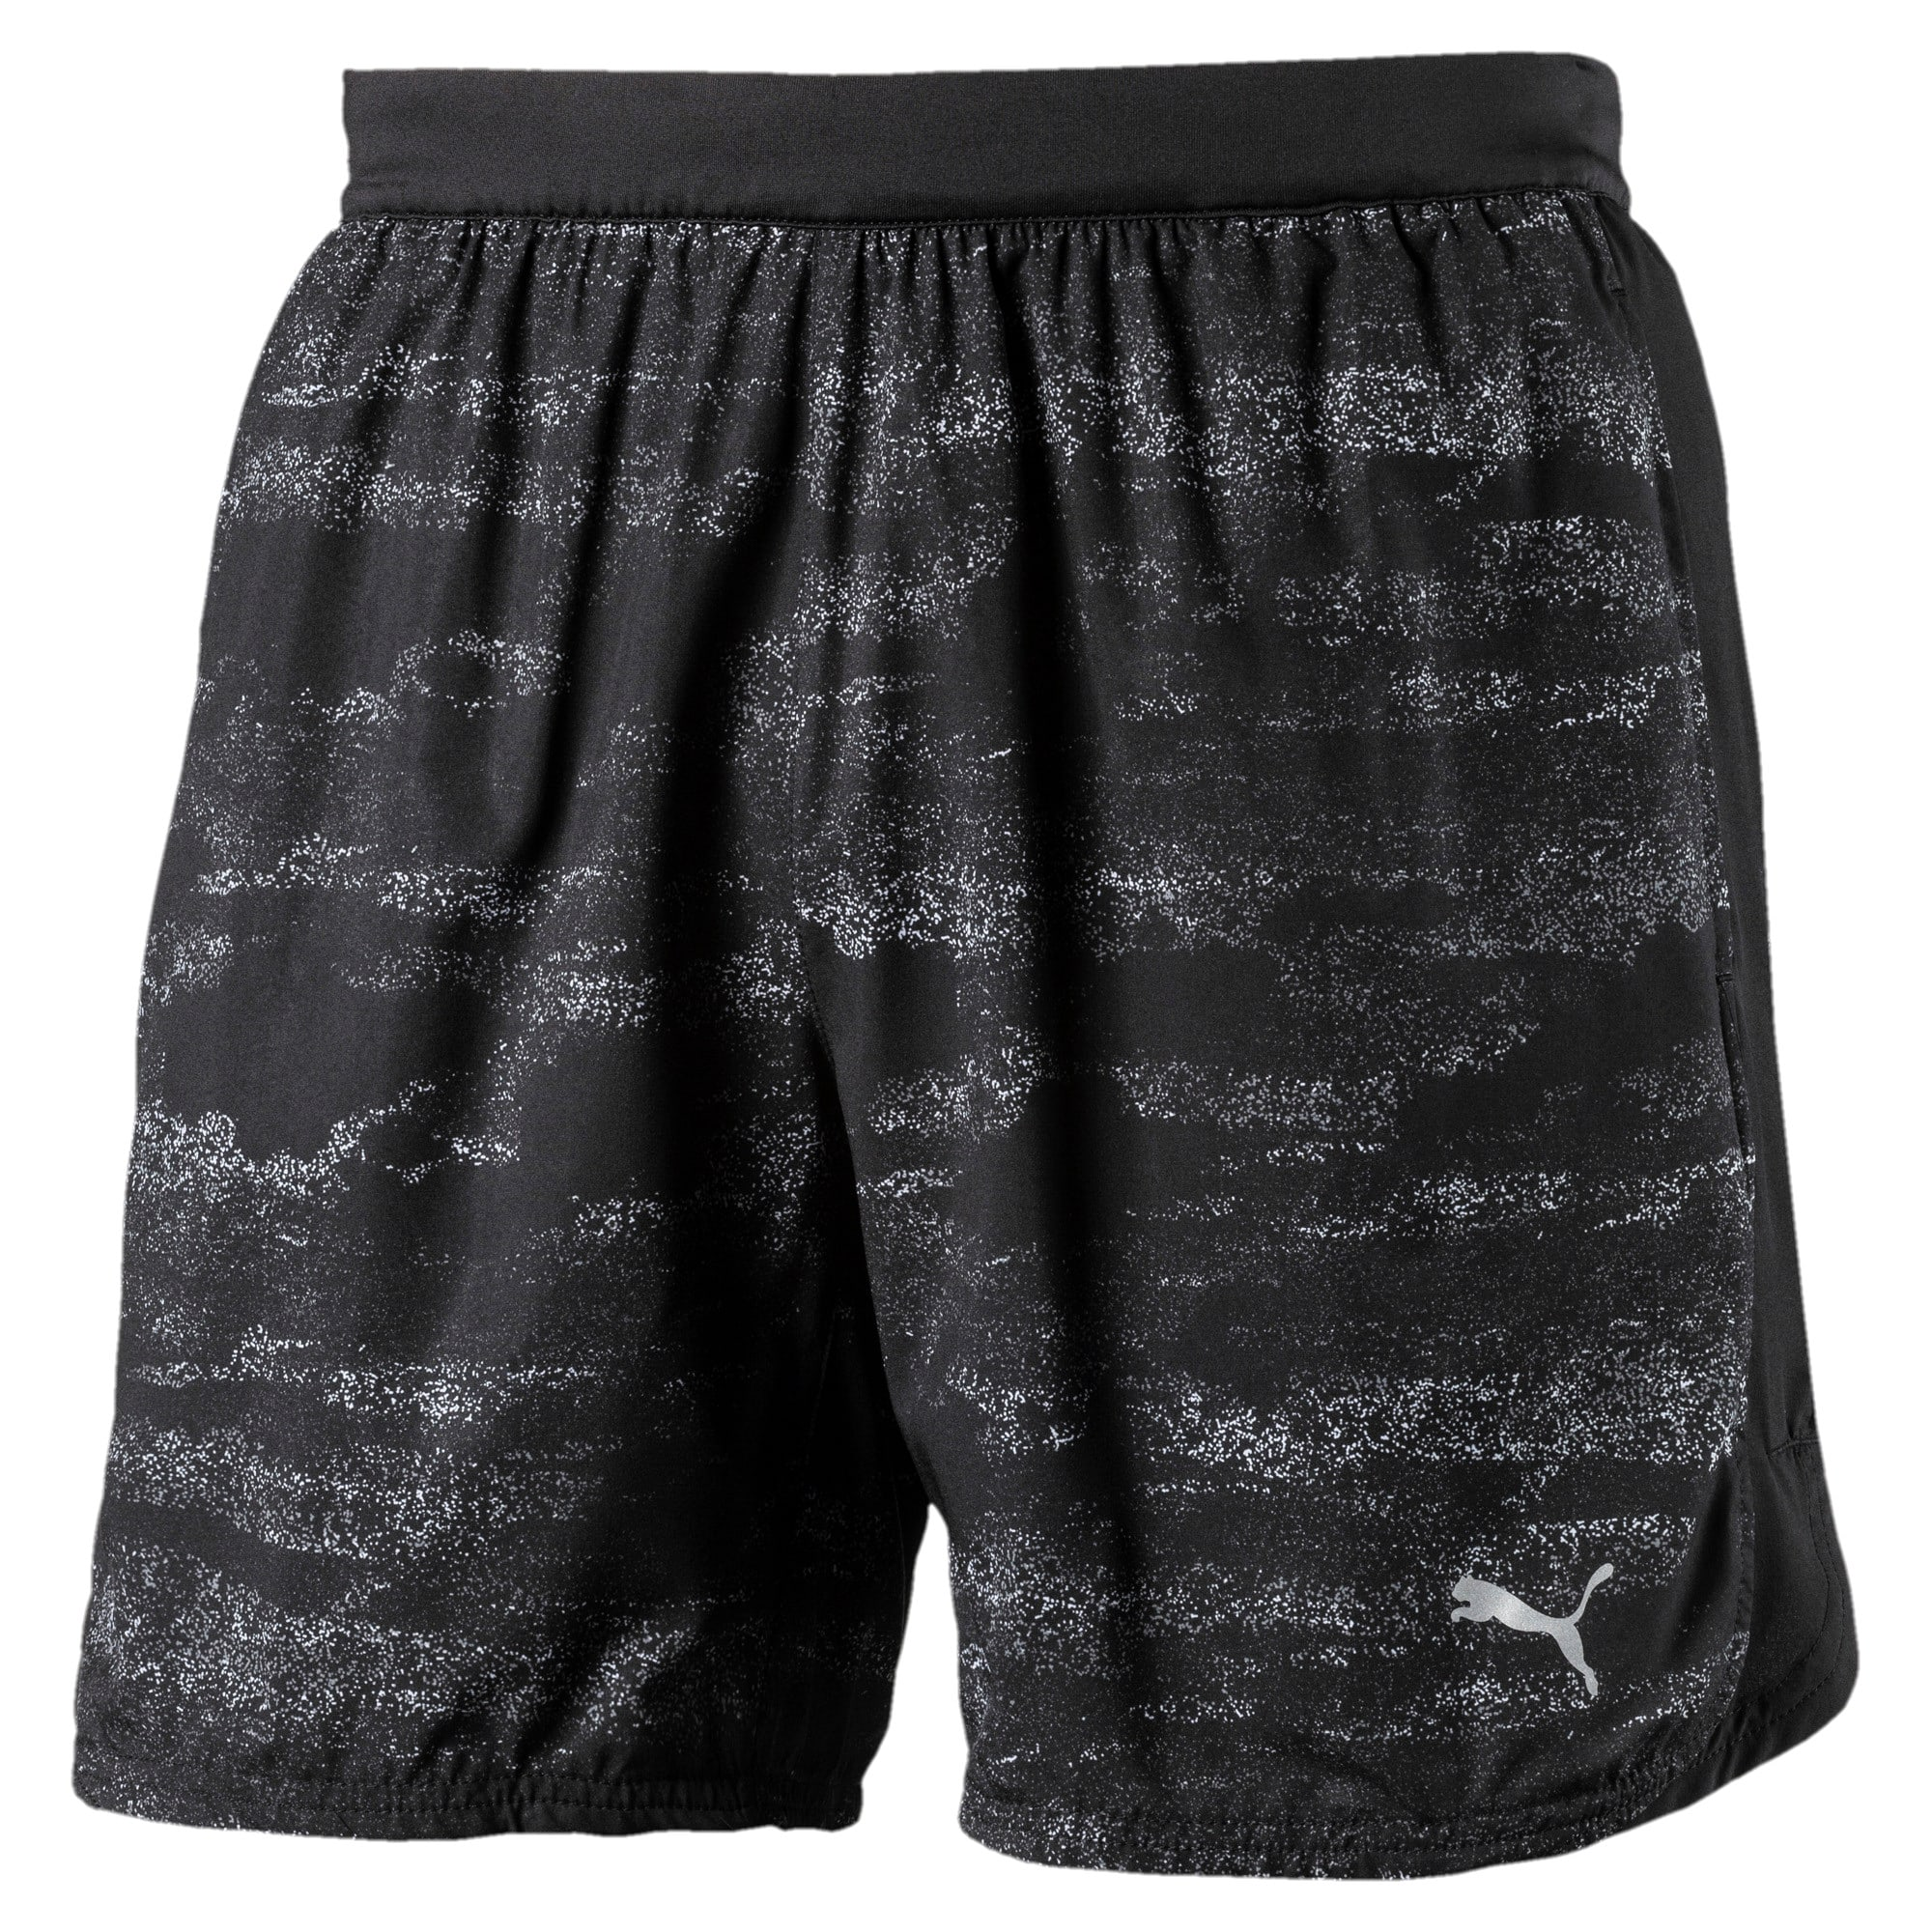 Thumbnail 1 of Running Men's Nocturnal Pace Shorts, Puma Black-new graphic, medium-IND